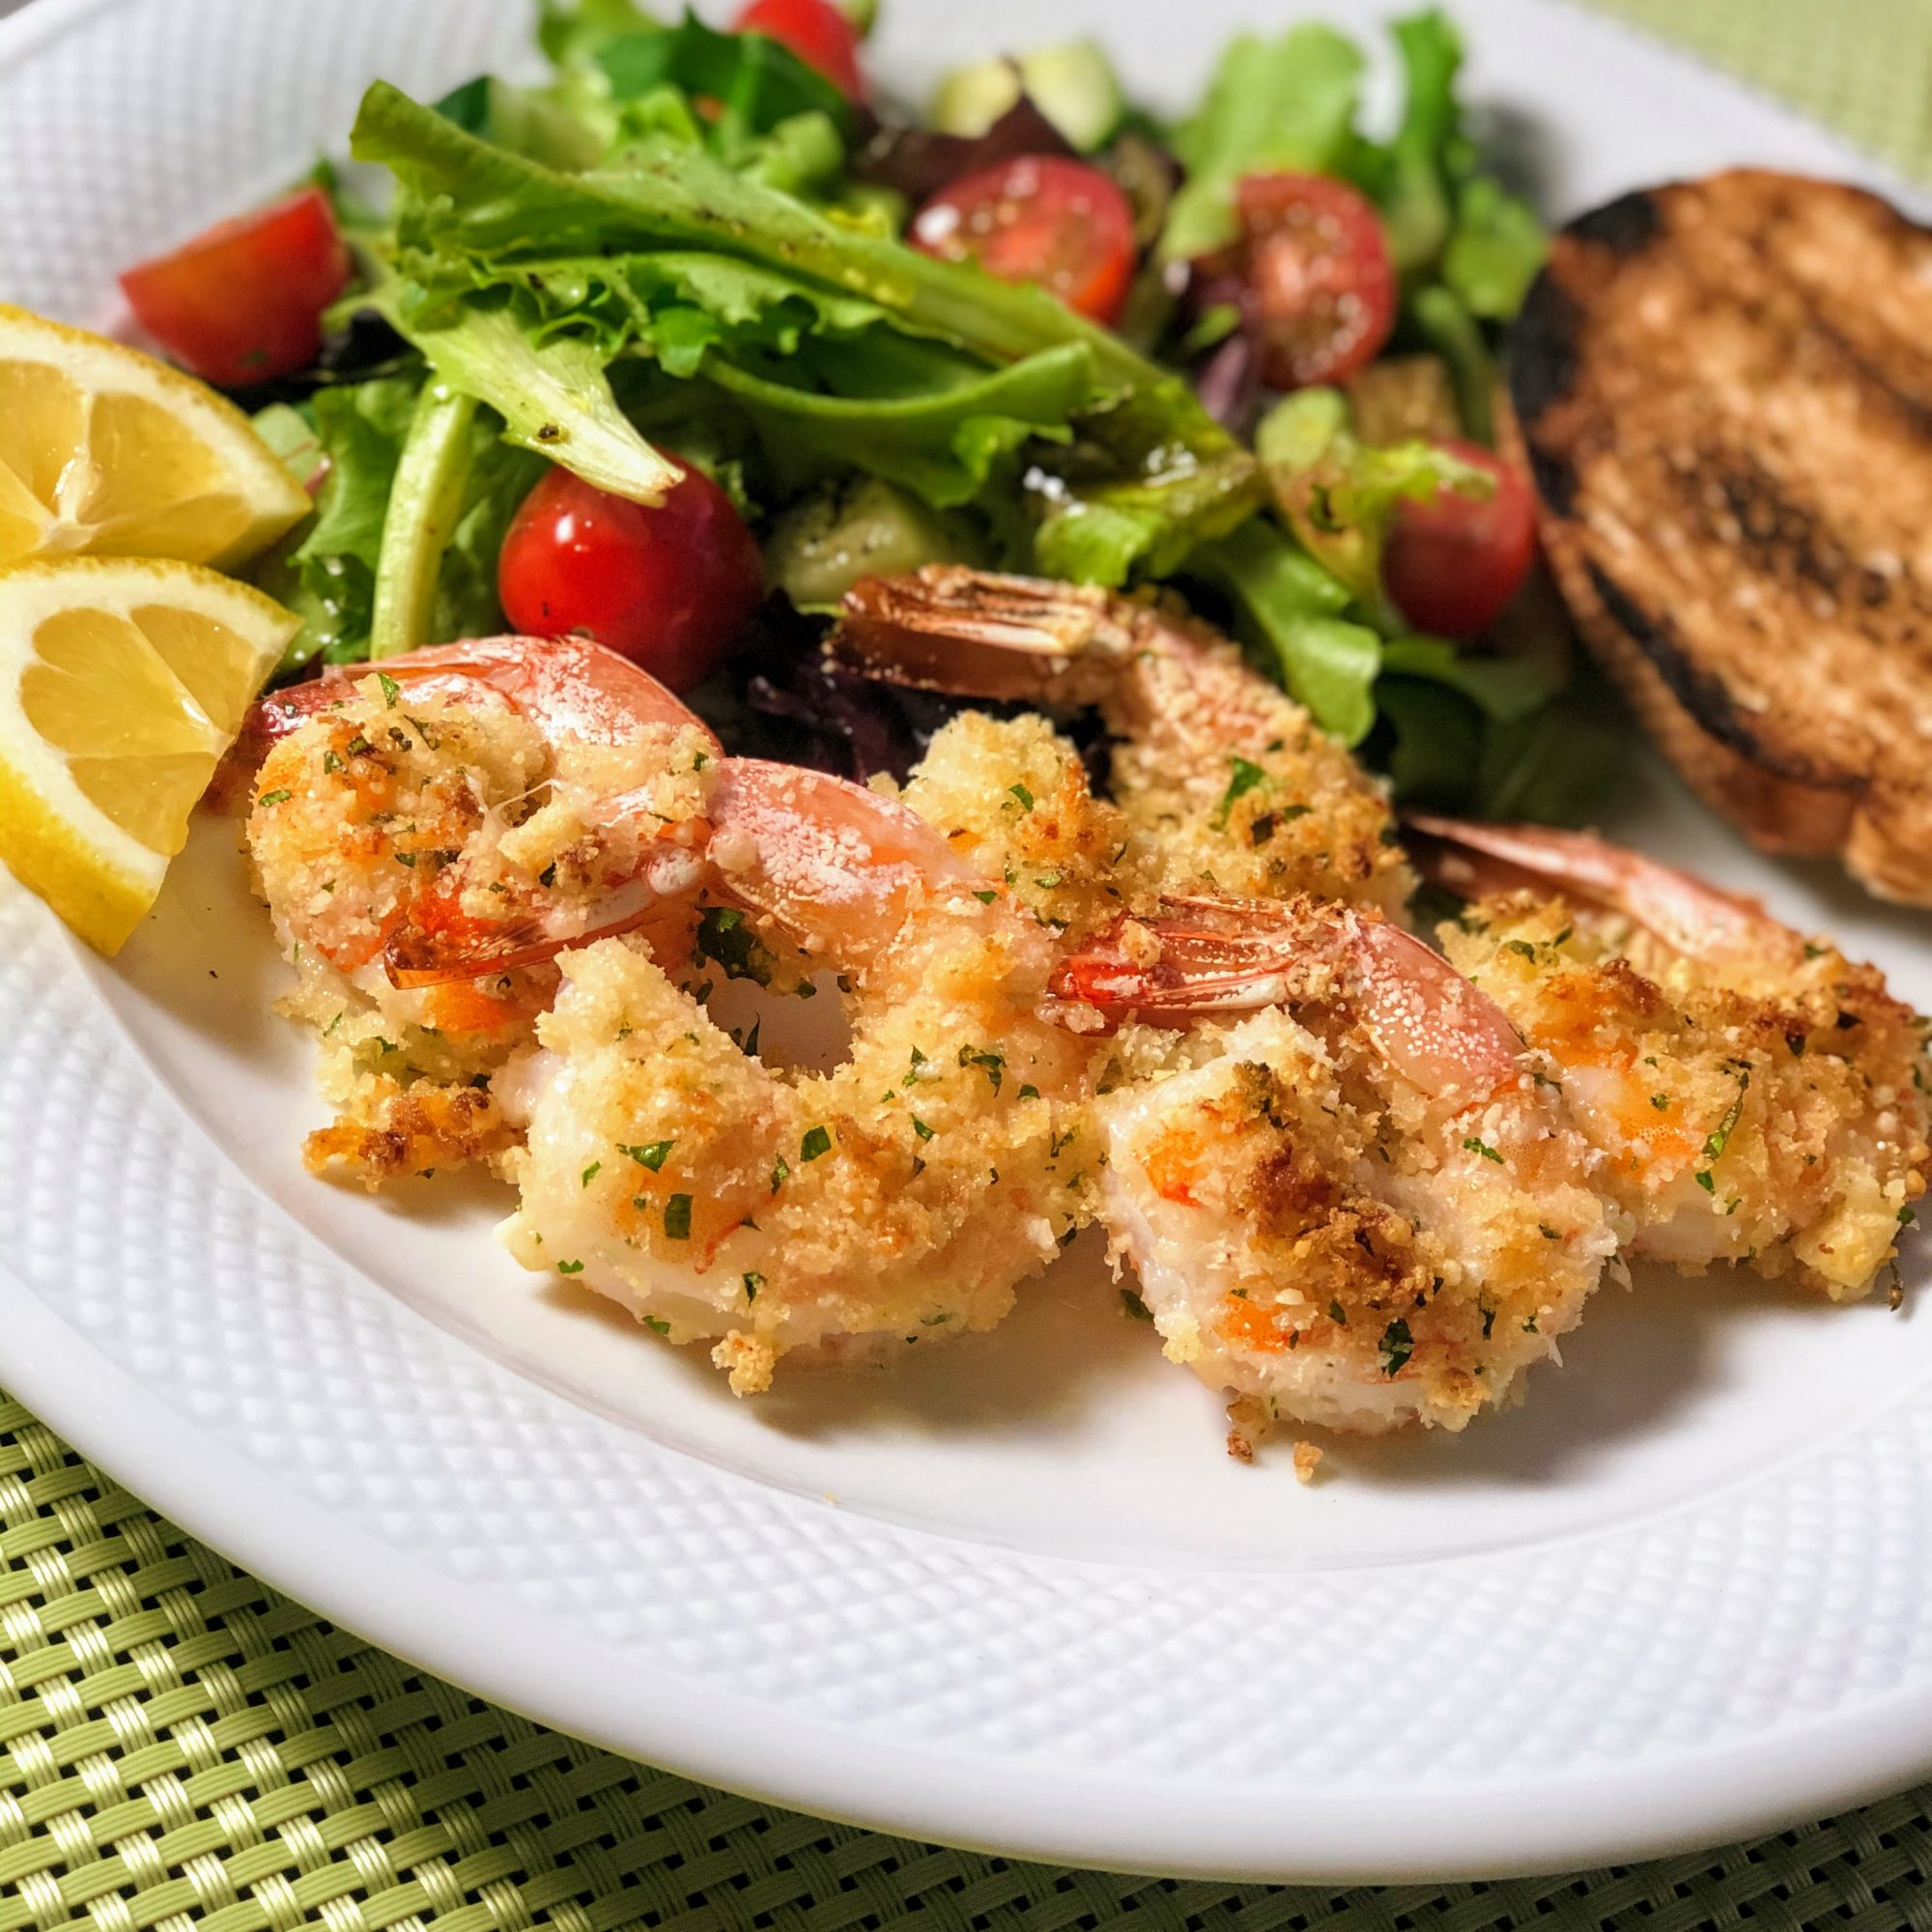 Garlic Parmesan Shrimp with a salad on a white plate